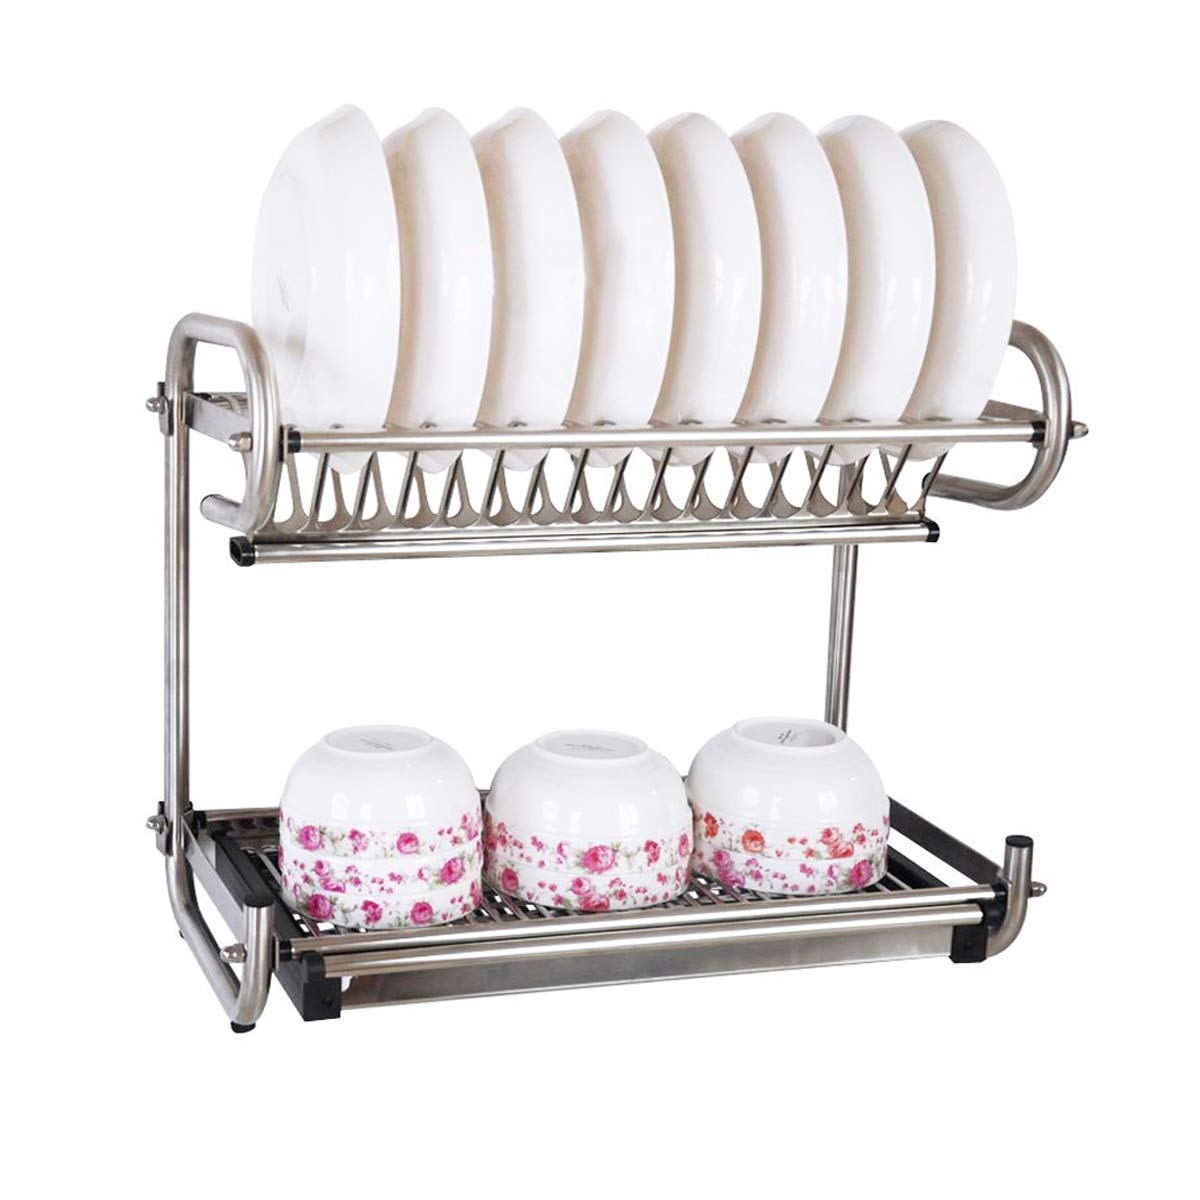 2-Tier Kitchen Cabinet Dish Rack Stainless Steel Wall Mount Dish Rack Bowls Utensils Drying Rack Dish Rack Organizer Rubber Leg Protector With Drain Board Tray